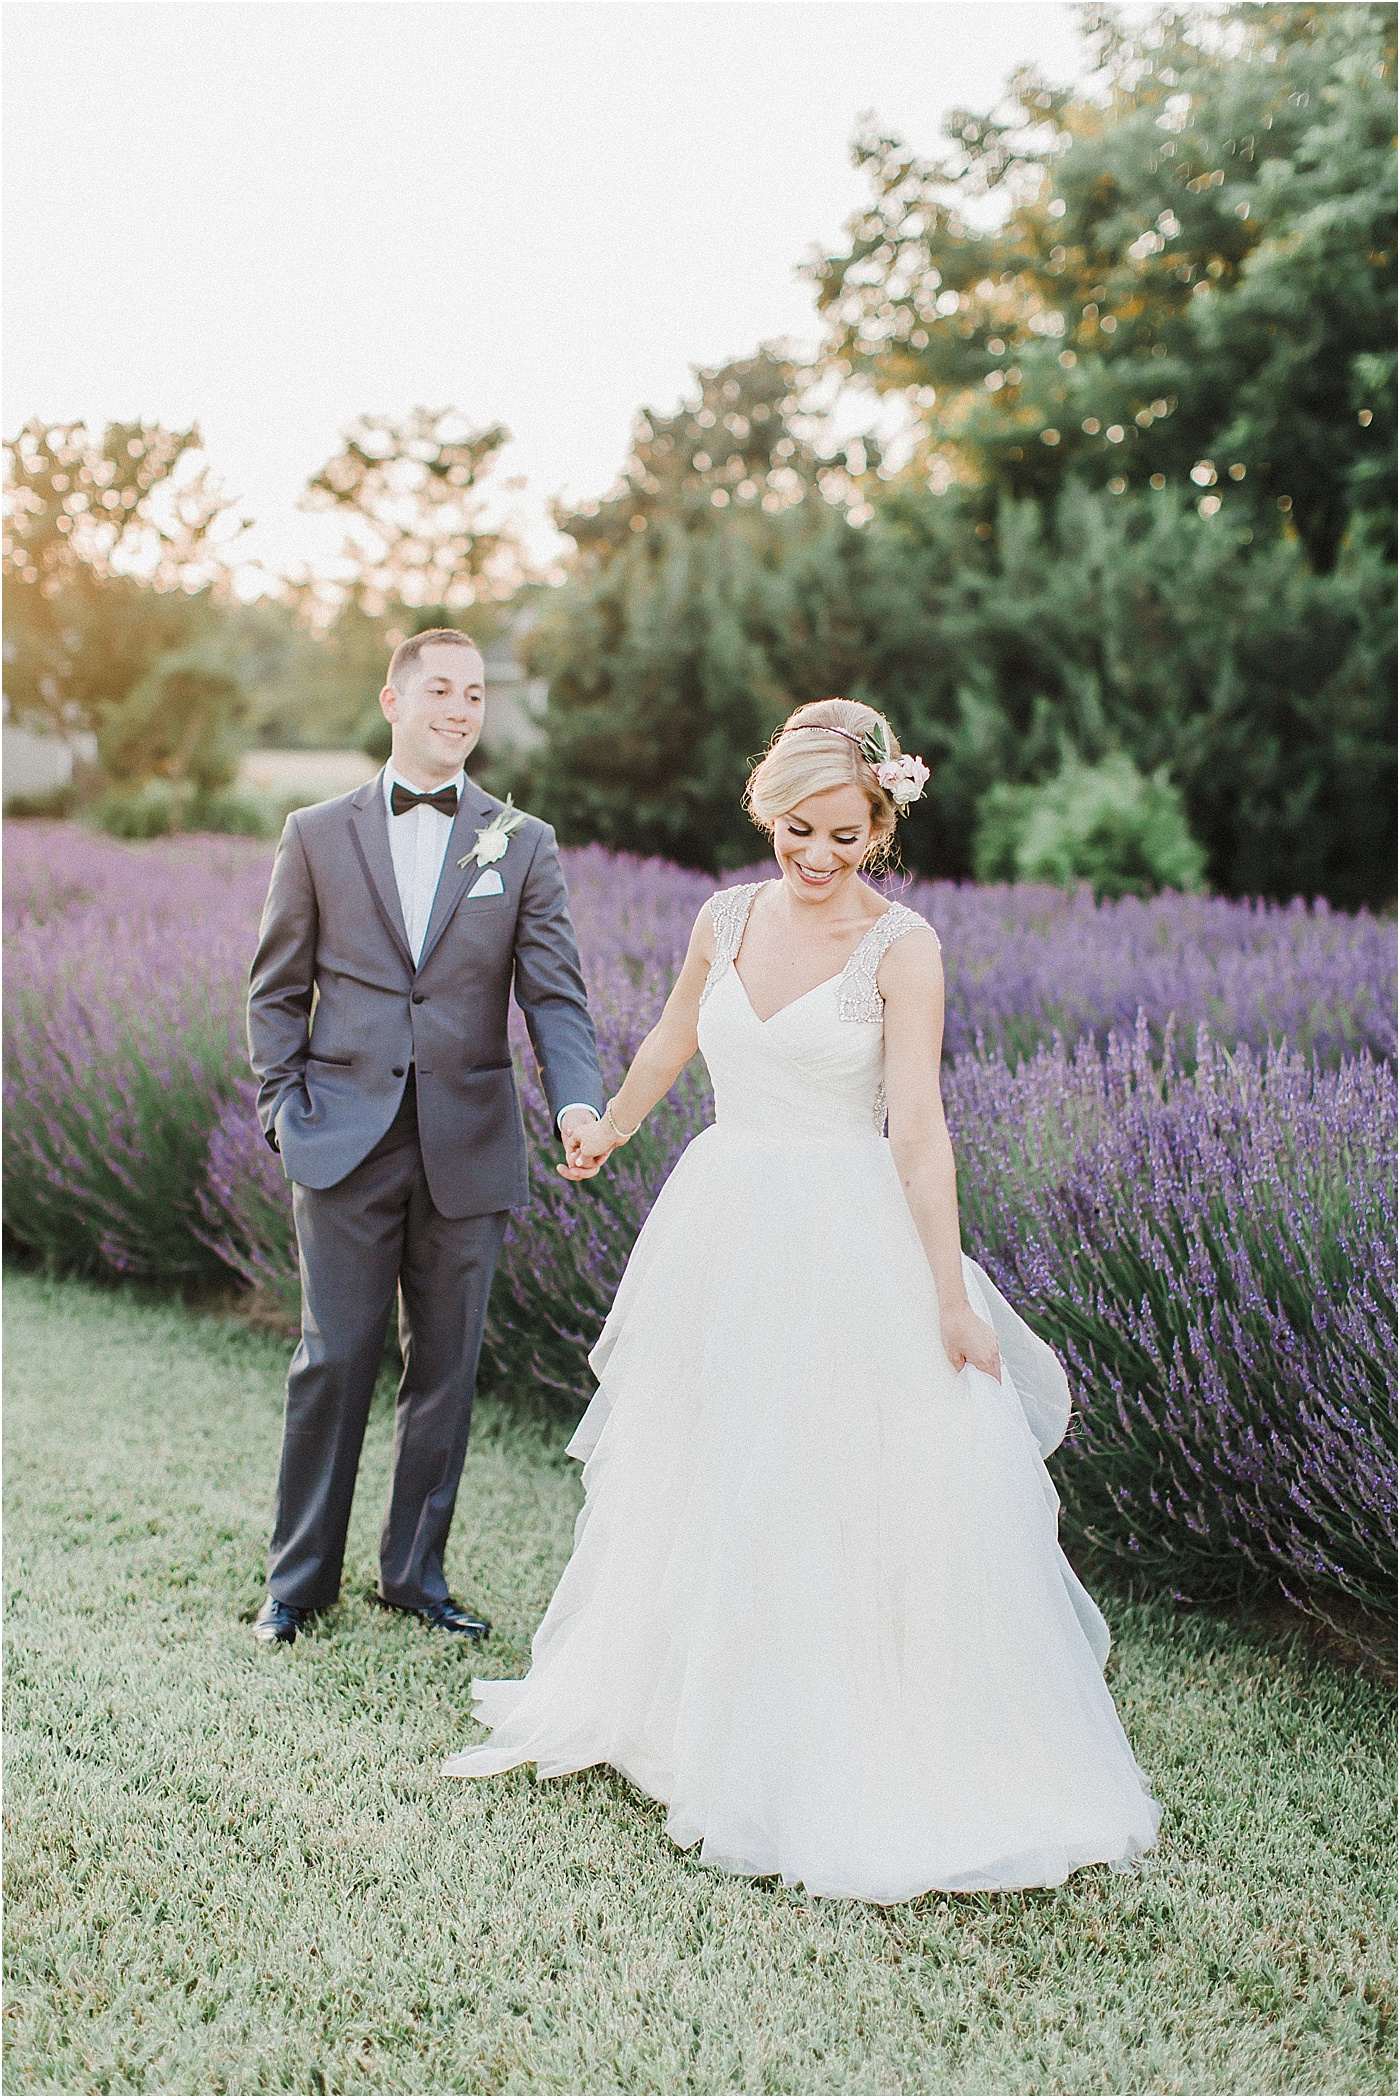 Lavender Field Bride and Groom Wedding Photos